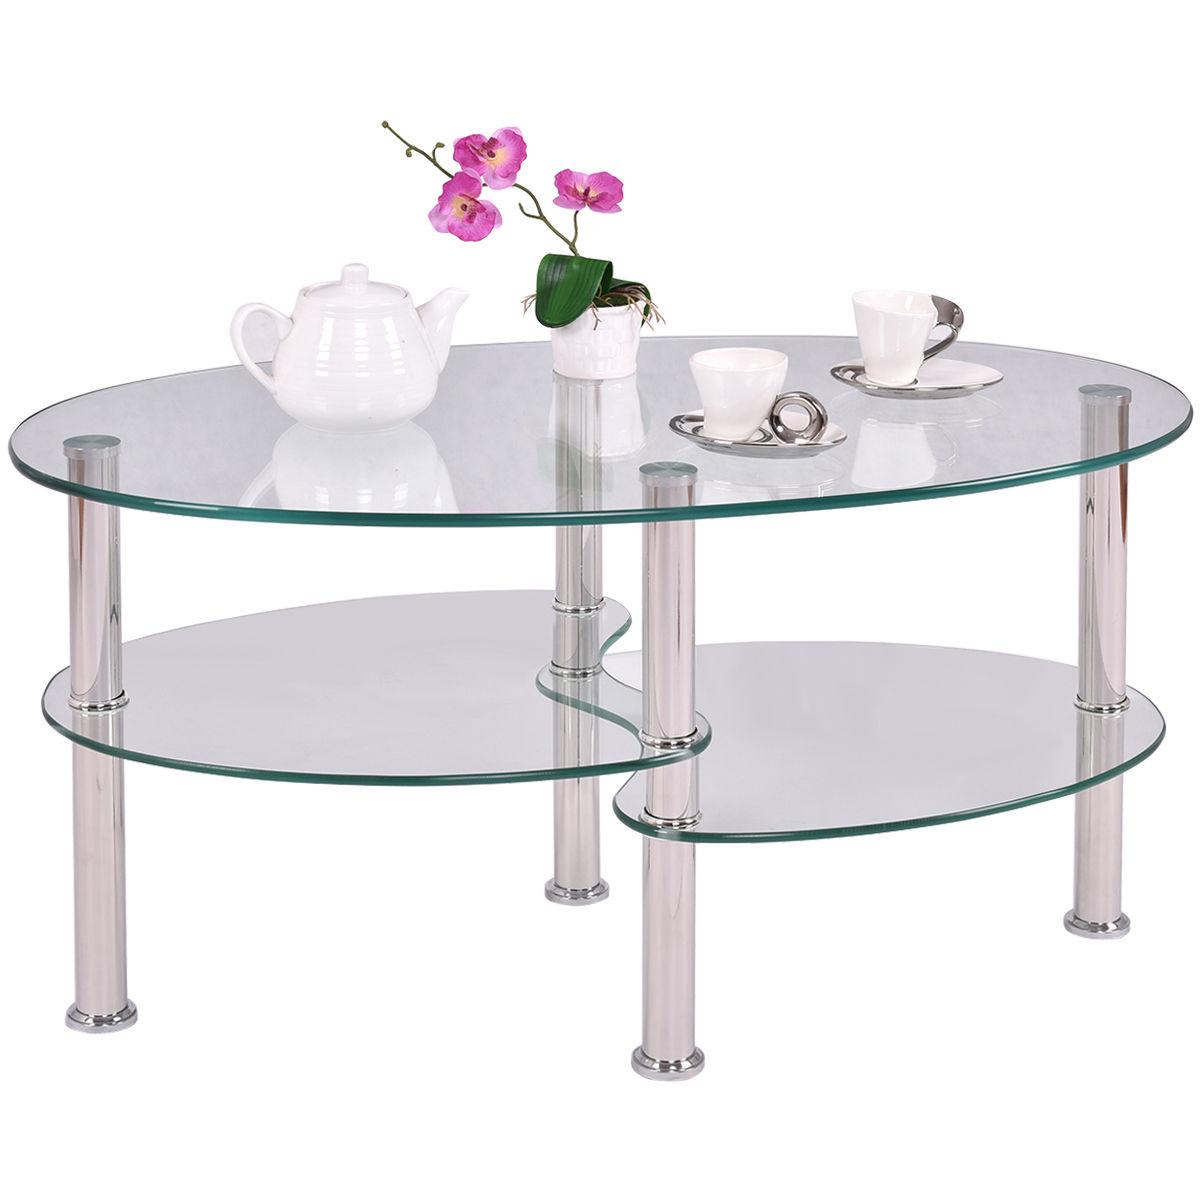 Tempered Glass Coffee Table With Drawers: Black Glass Oval Coffee Table Side Shelf Chrome Base